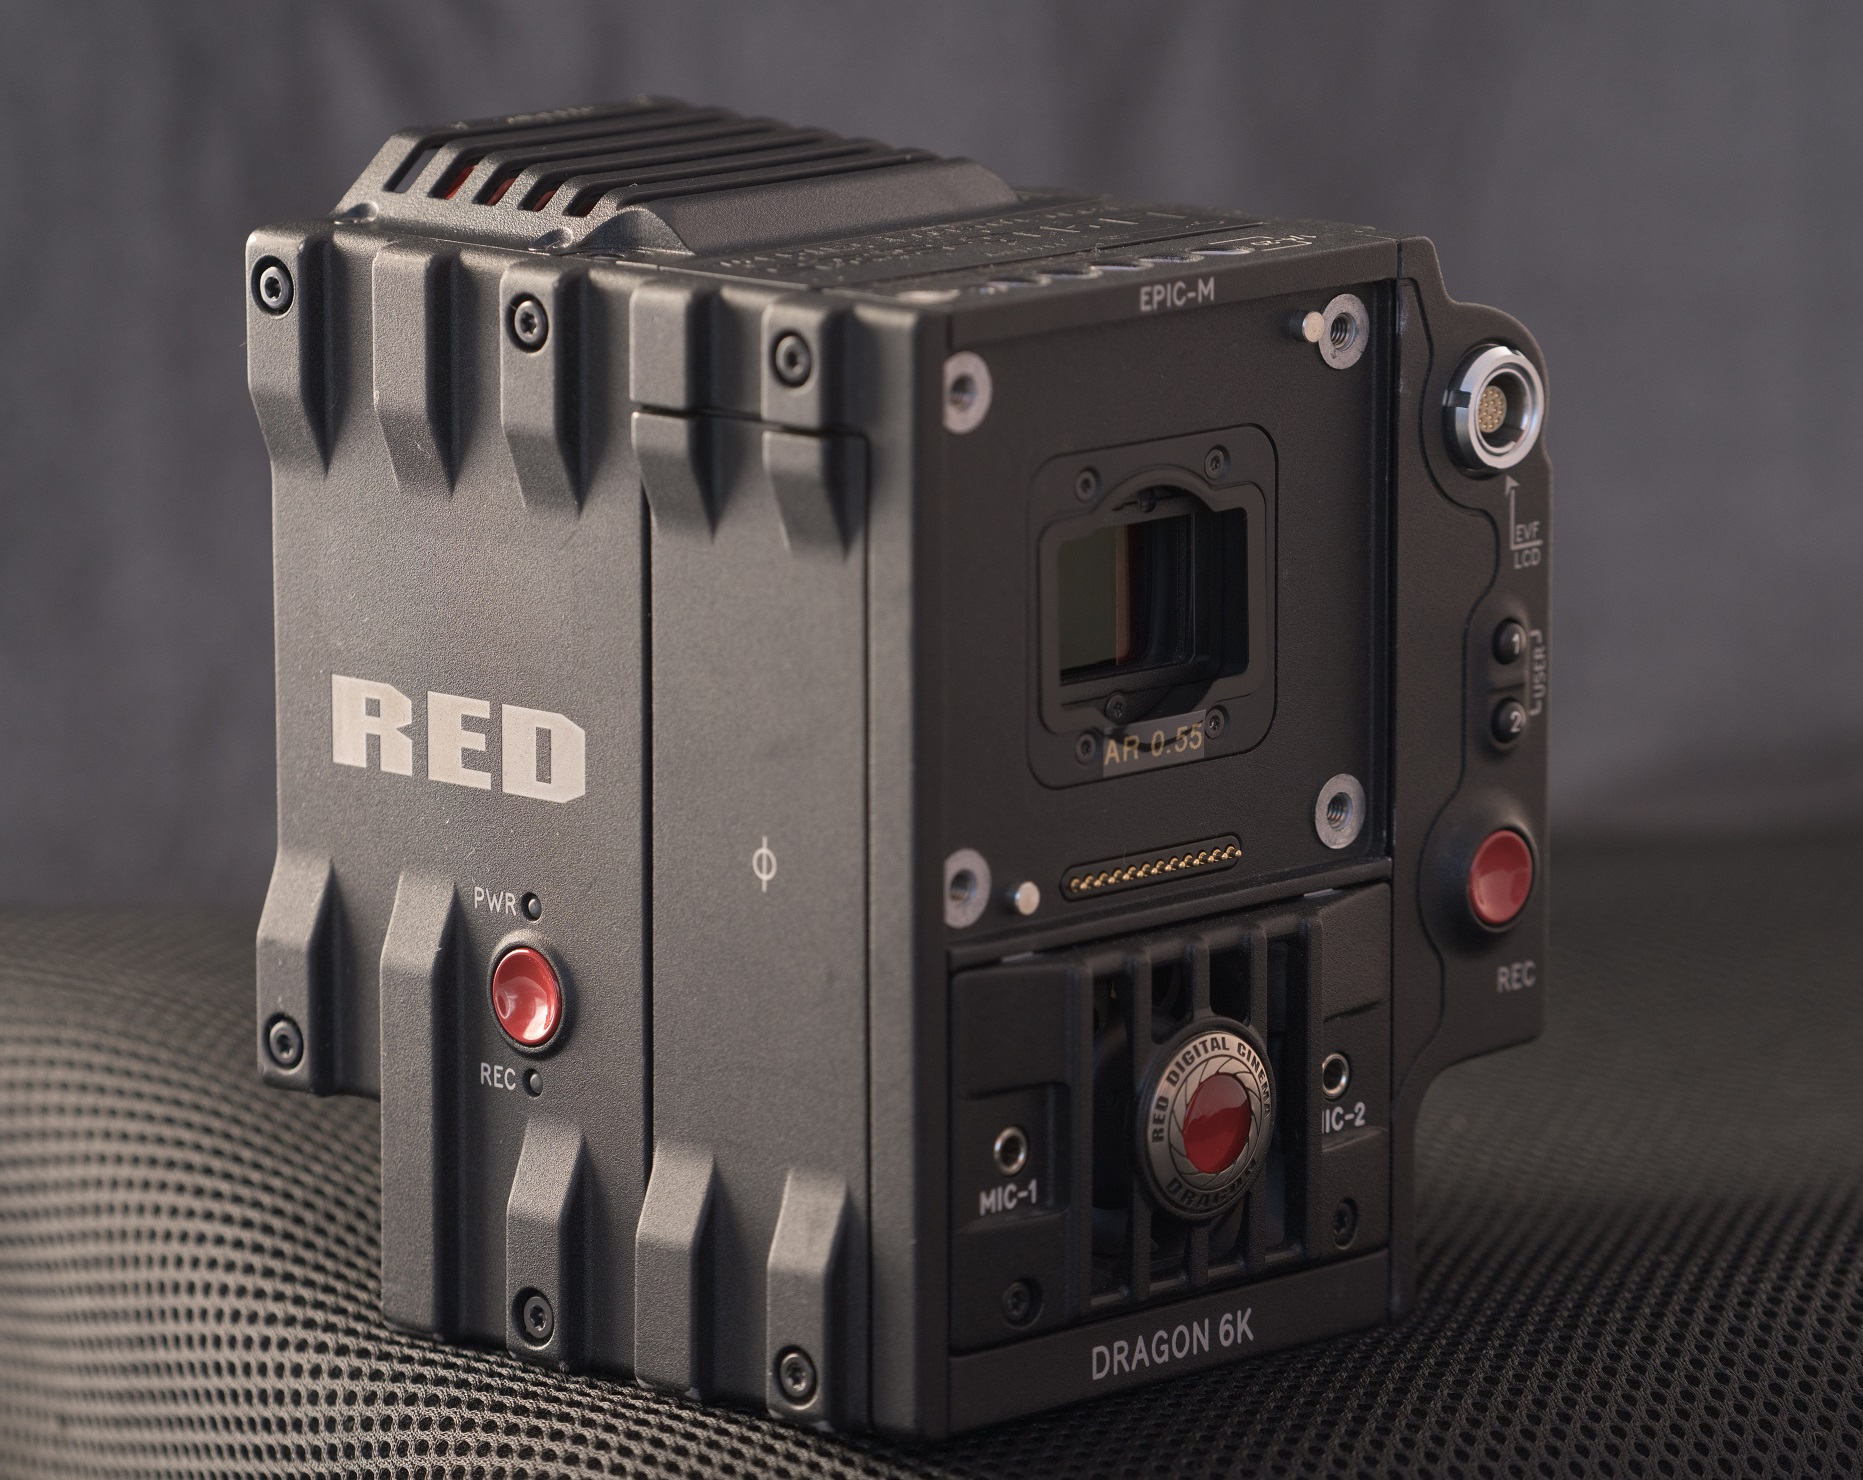 RED EPIC-M DRAGON 6K - Image #1